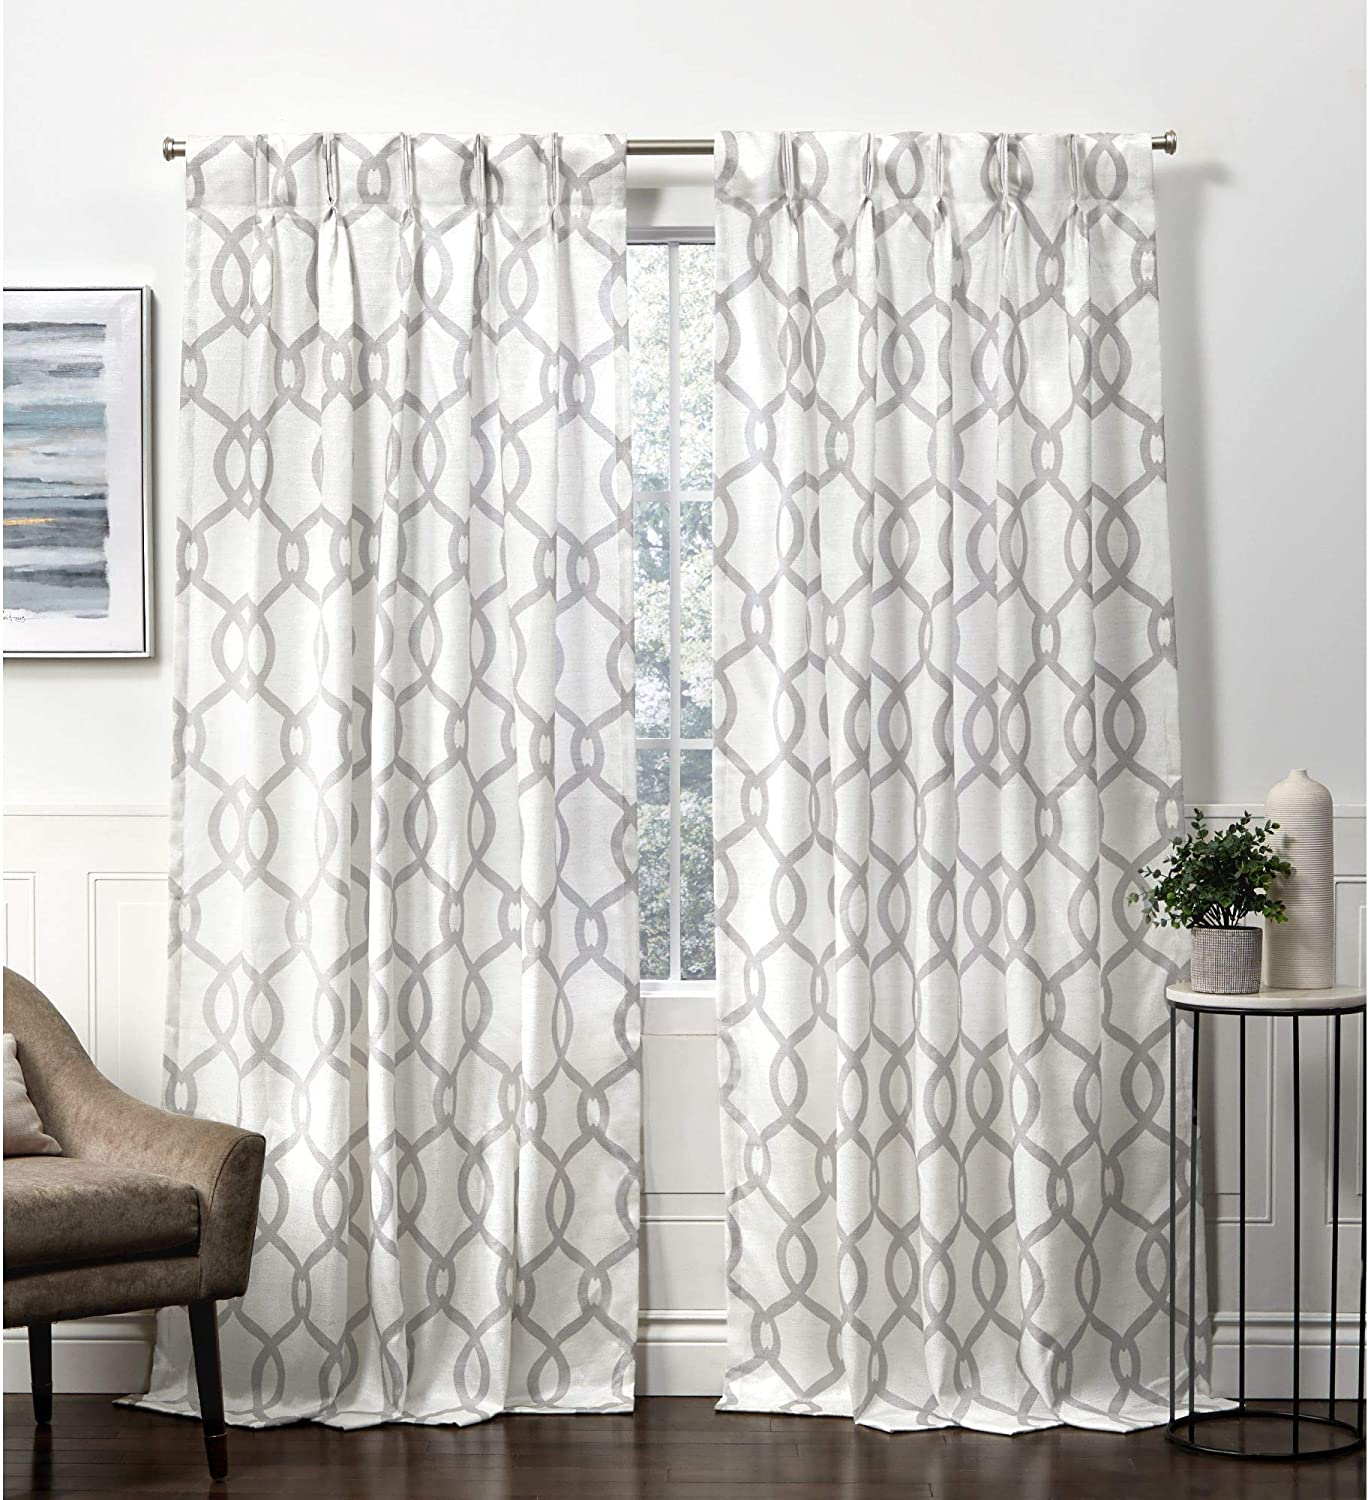 Exclusive Home Curtains Kochi Pinch Pleat Curtain Panel, 54x96, Dove Grey, 2 Panels